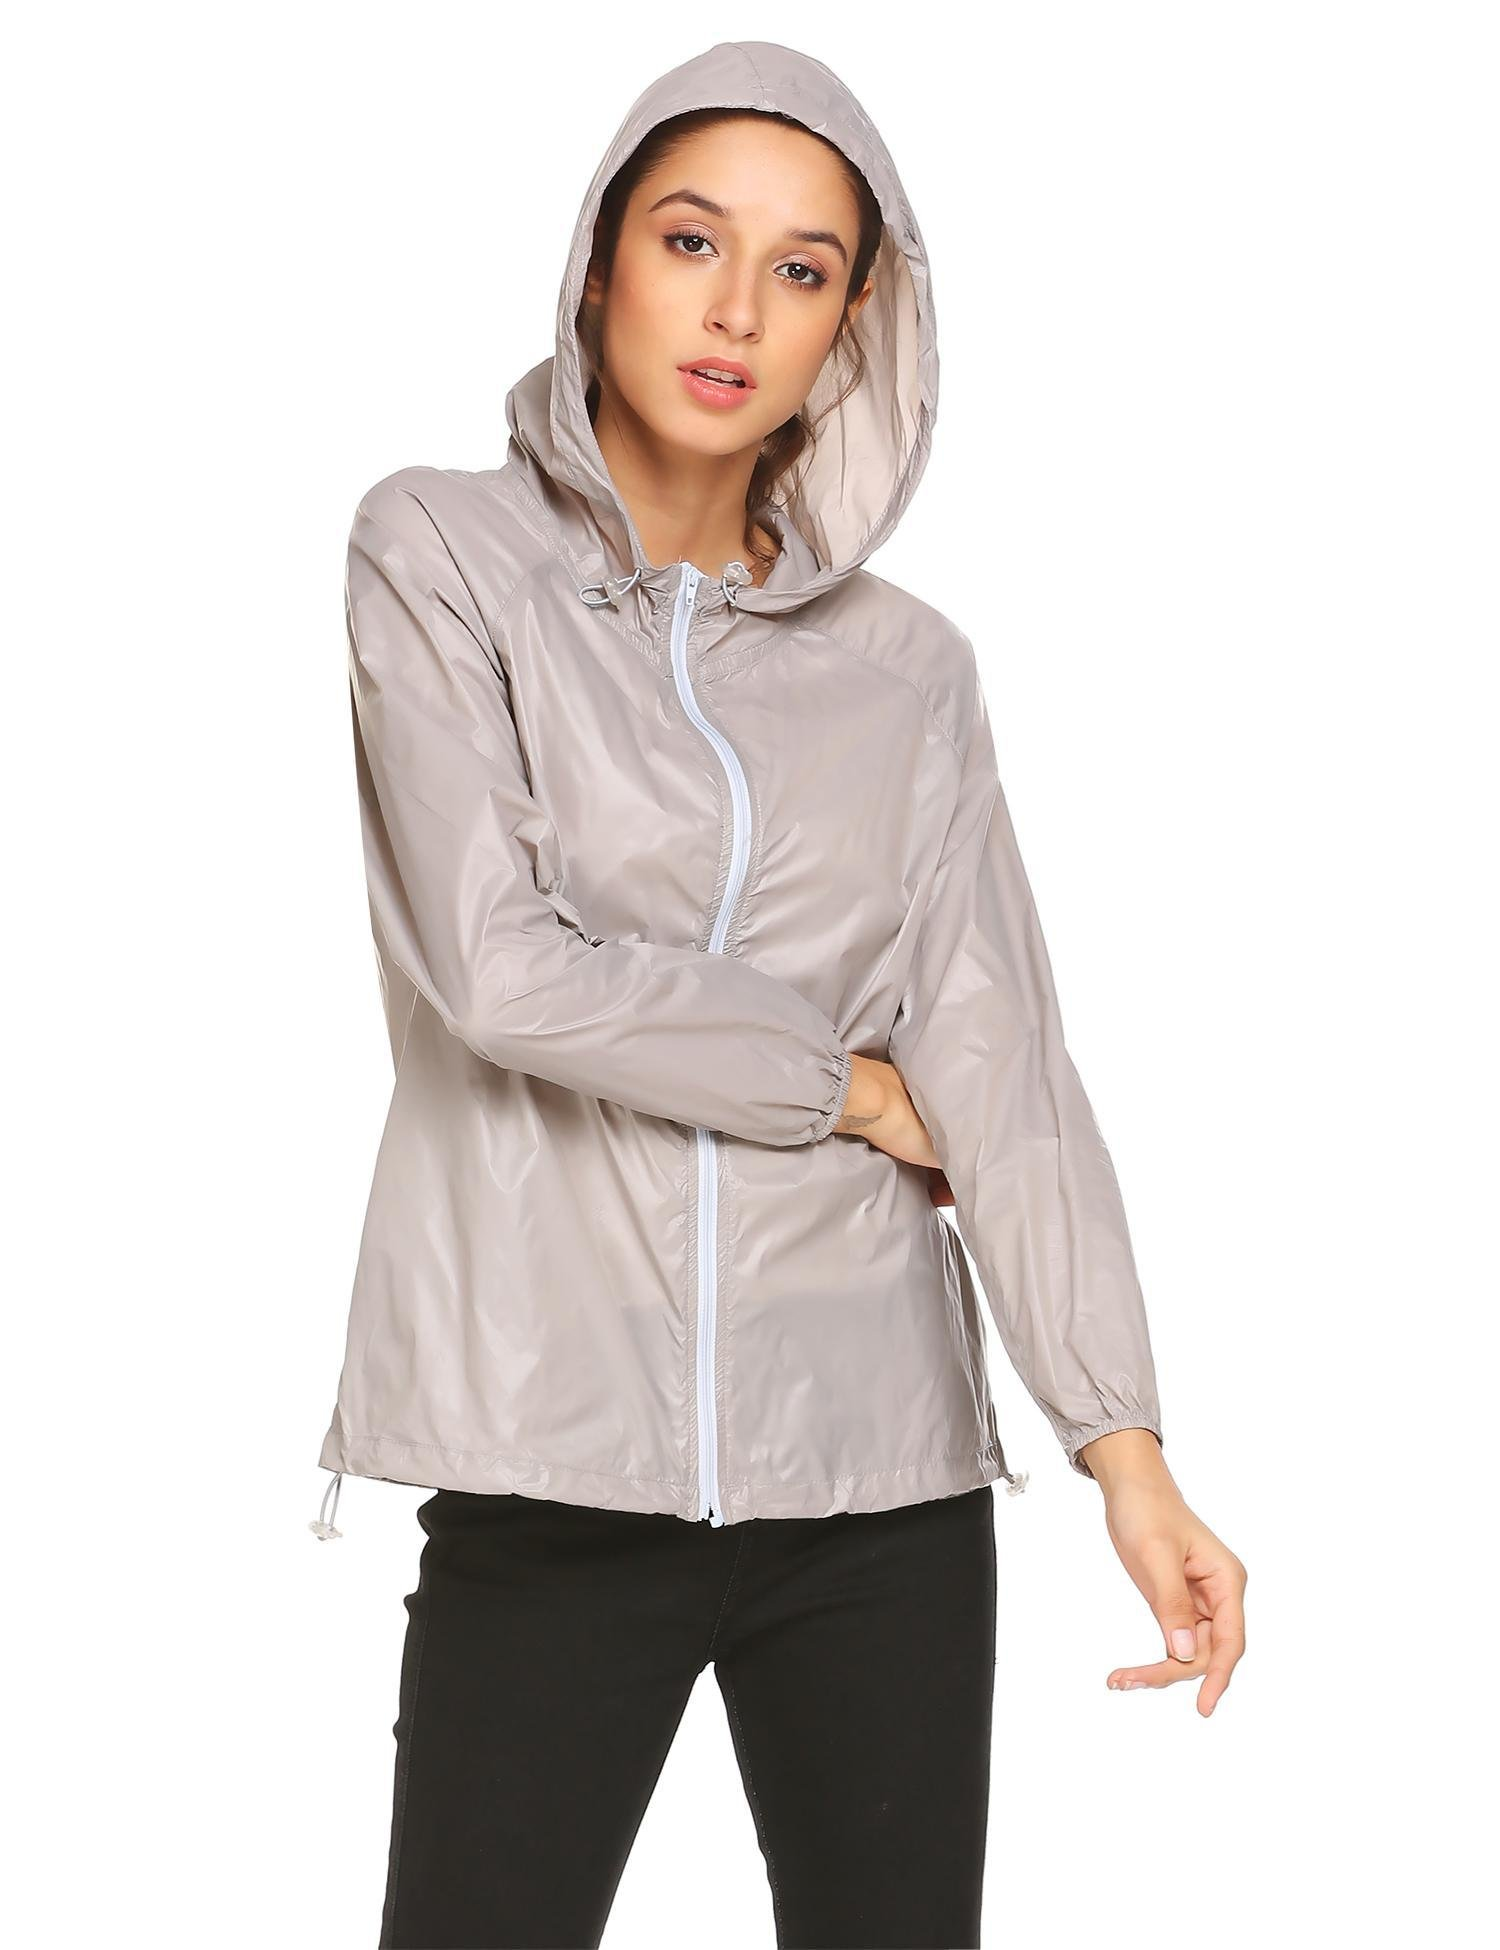 348b3618b26 Zeagoo Women Lightweight Rainwear Active Outdoor Hoodie Cycling Running  Windbreaker Jacket